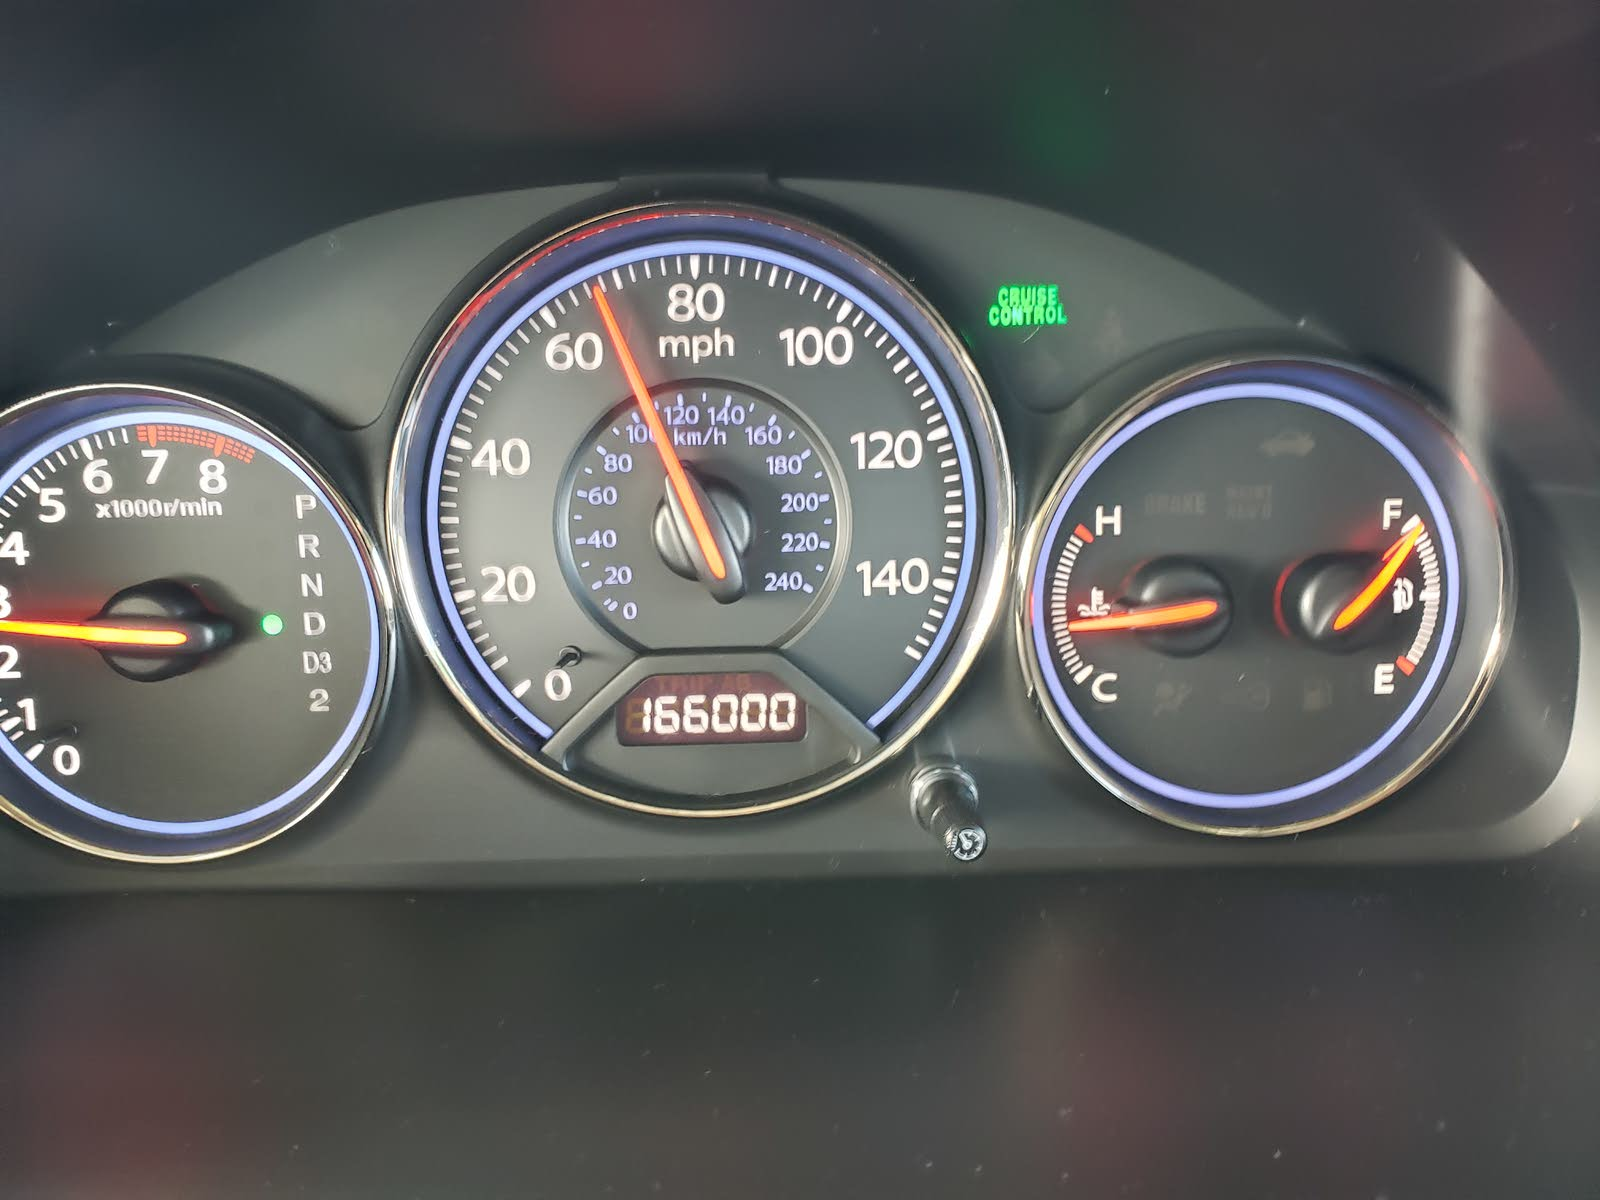 Toyota Camry Questions - What does the dash light meanMaintenance